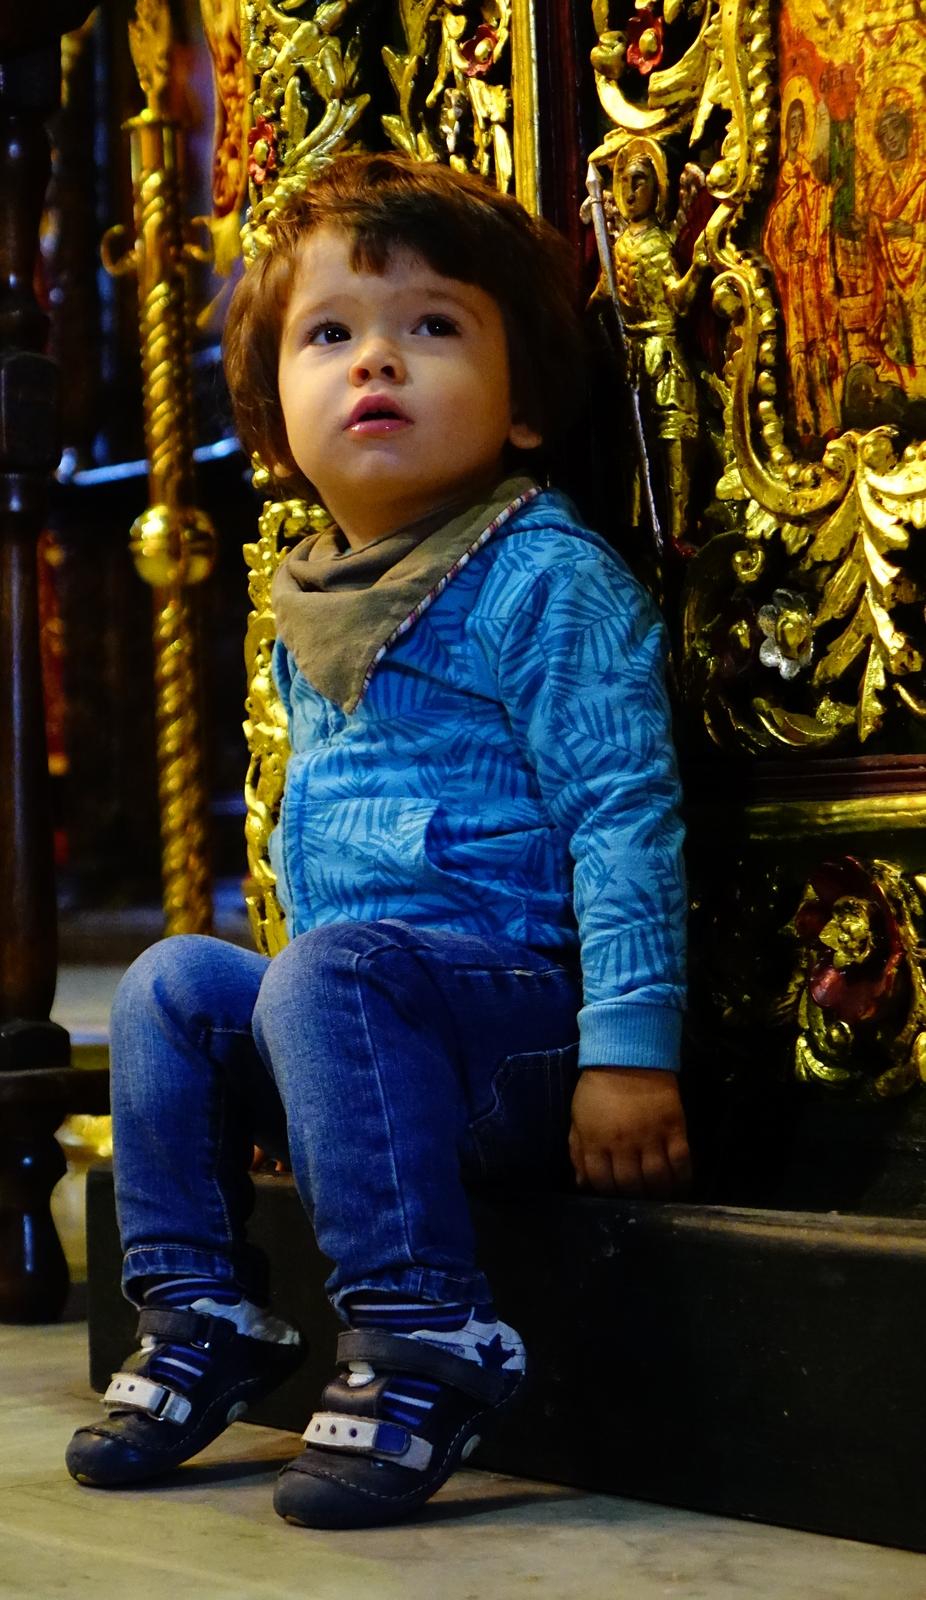 A child in the church